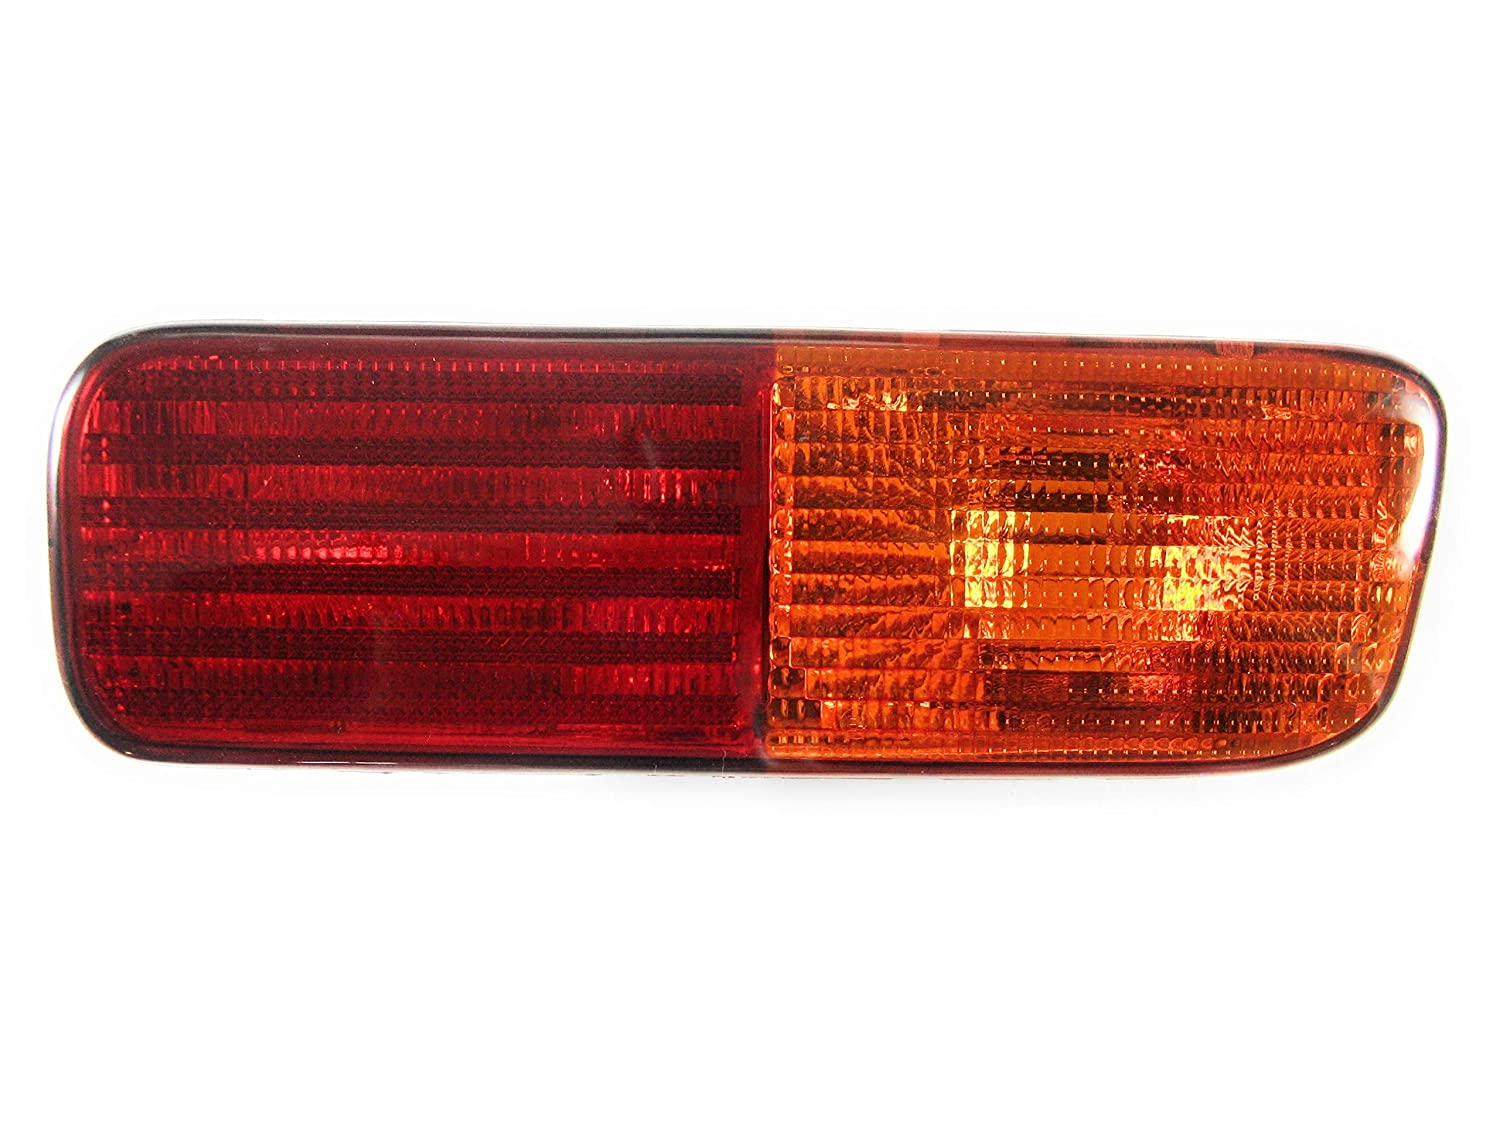 Land Rover Discovery II Passenger Side Right Rear Bumper Light by Allmakes 4x4